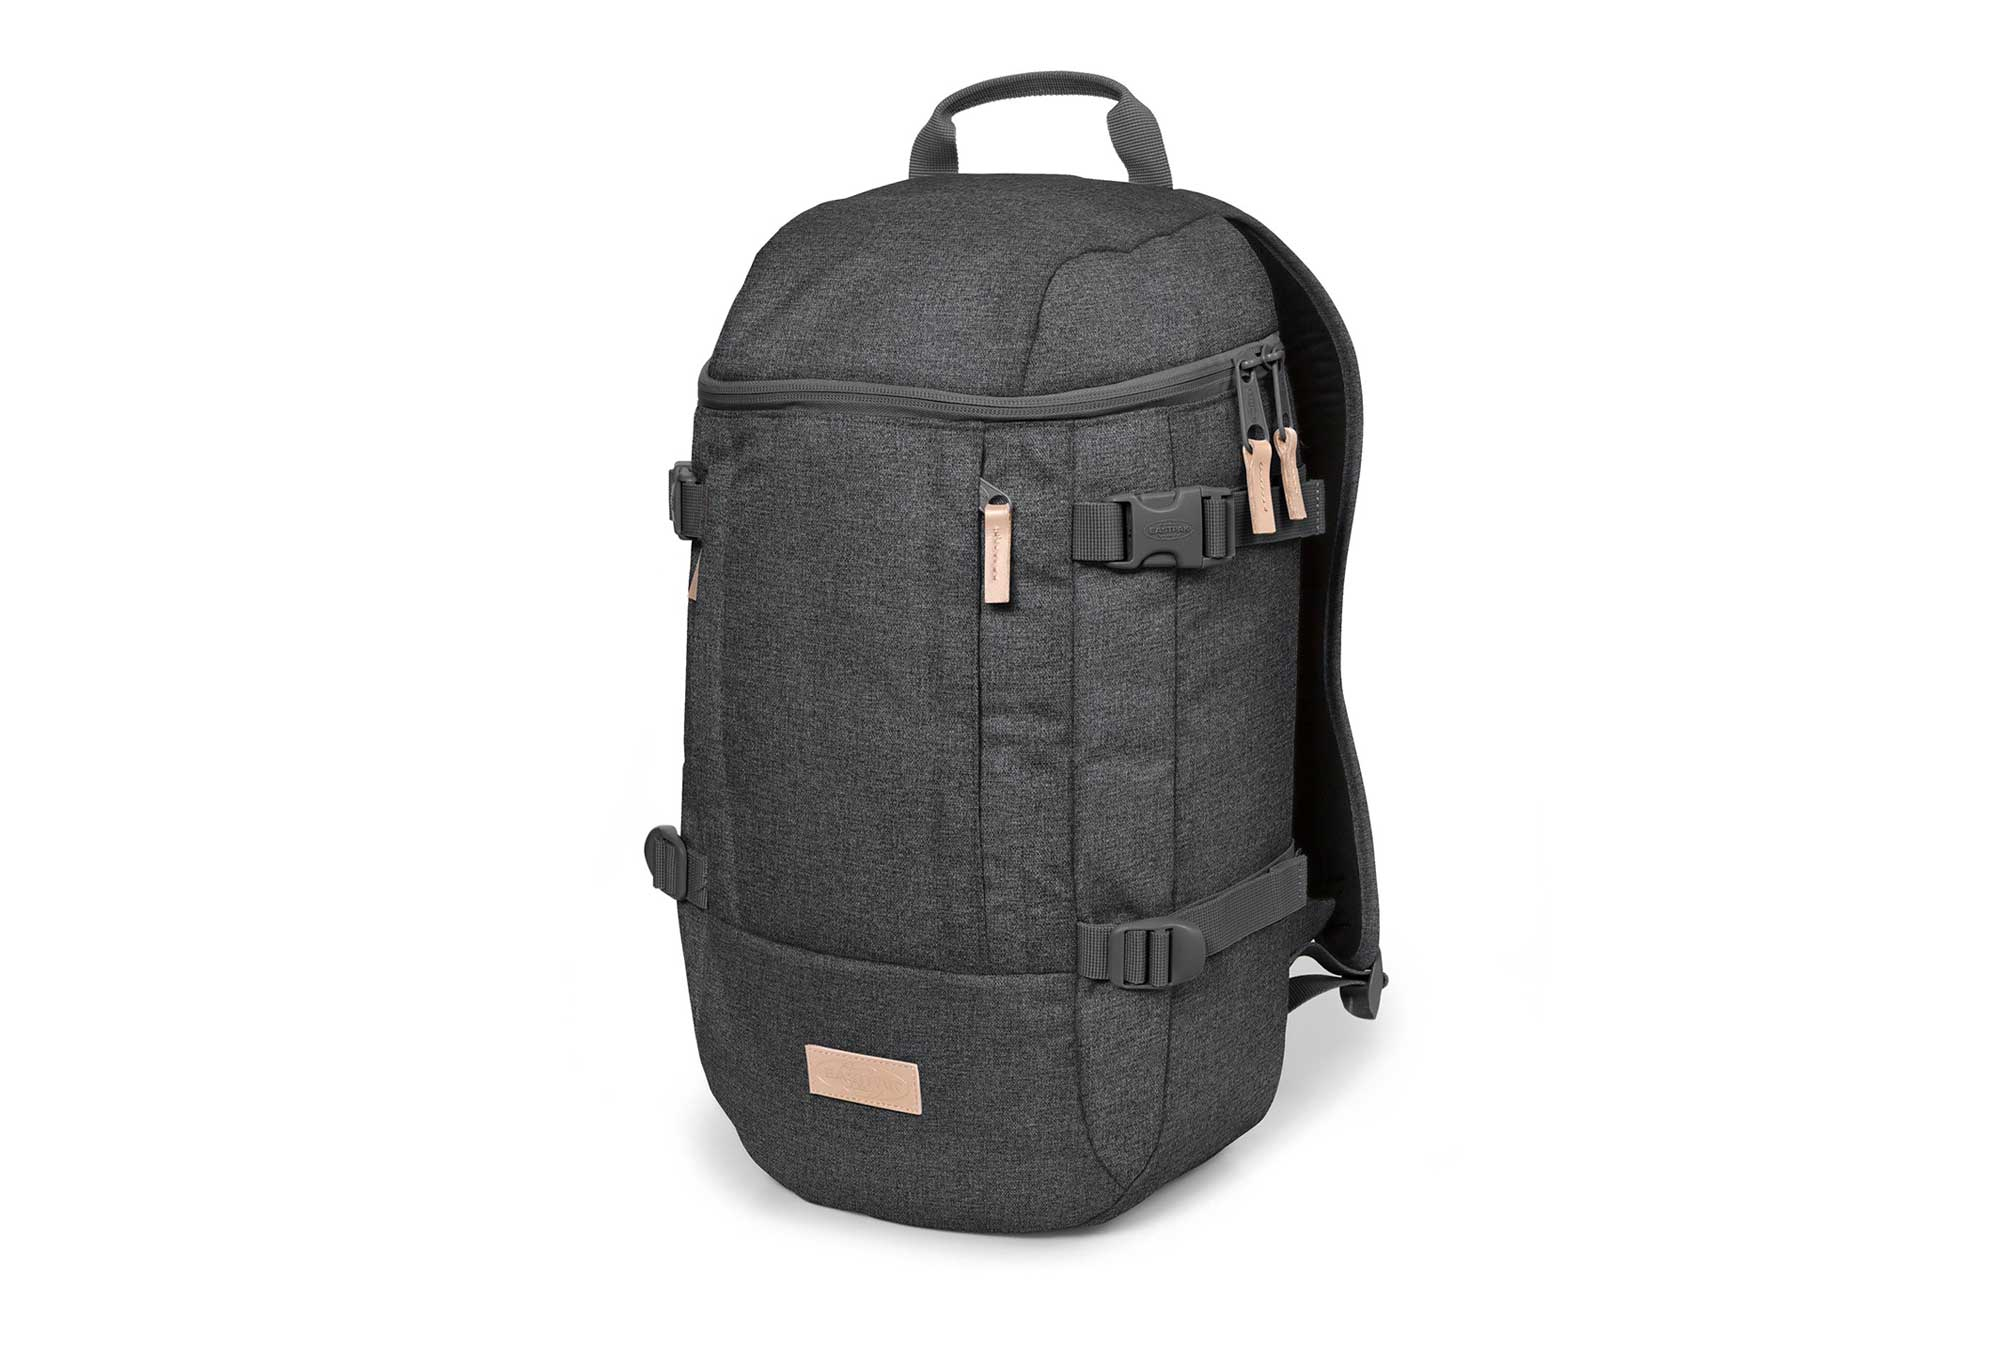 À Sac Dos Topfloid Denim Black Eastpak b6v7Yygf